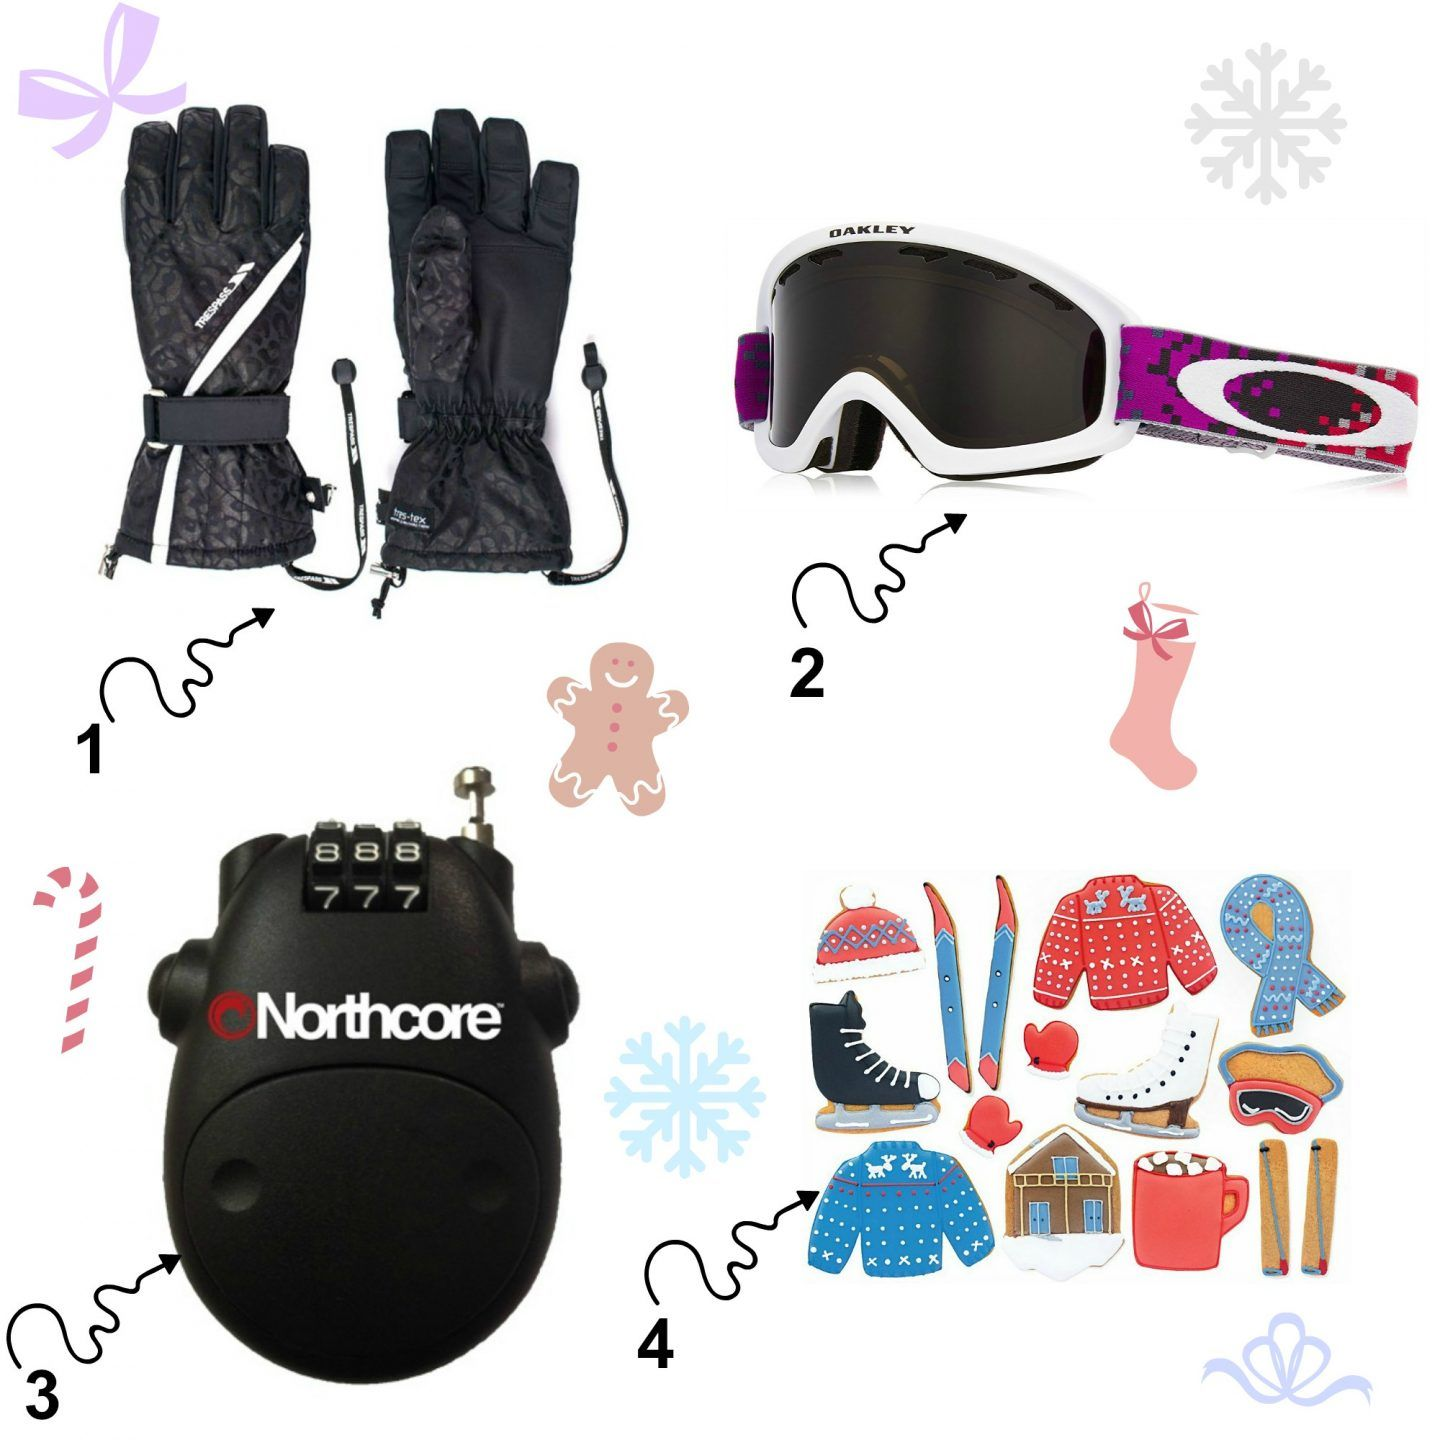 A christmas gift guide for female skiers from under 10